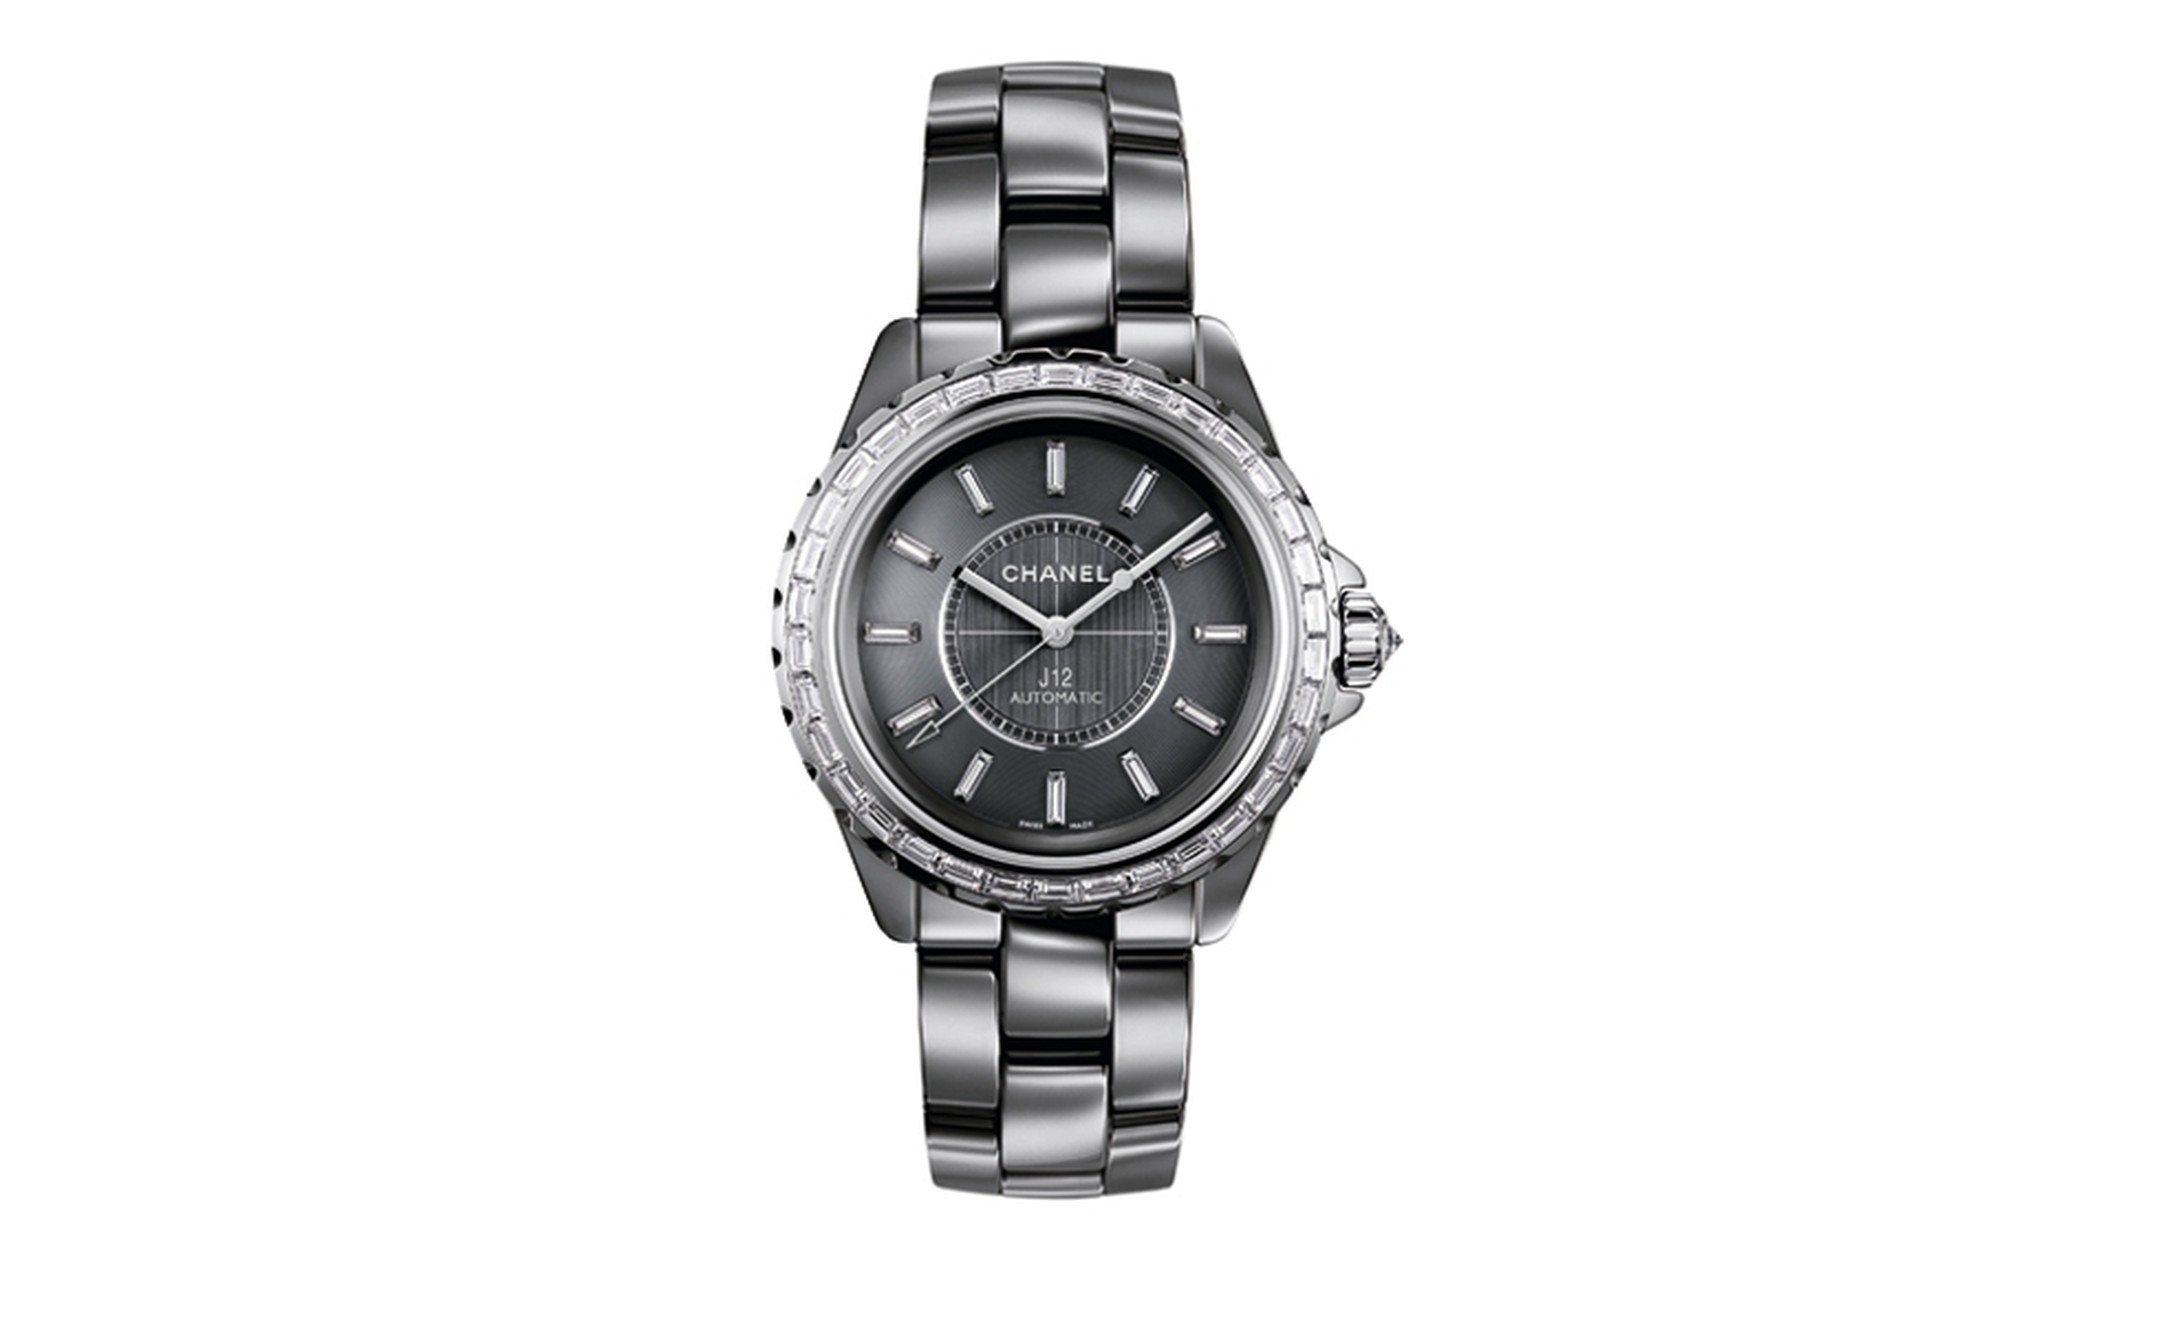 CHANEL, J12 Chromatic 38mm watch in Titanium ceramic, white gold bezel, crown and hands. Set with diamonds. High precision quartz movement